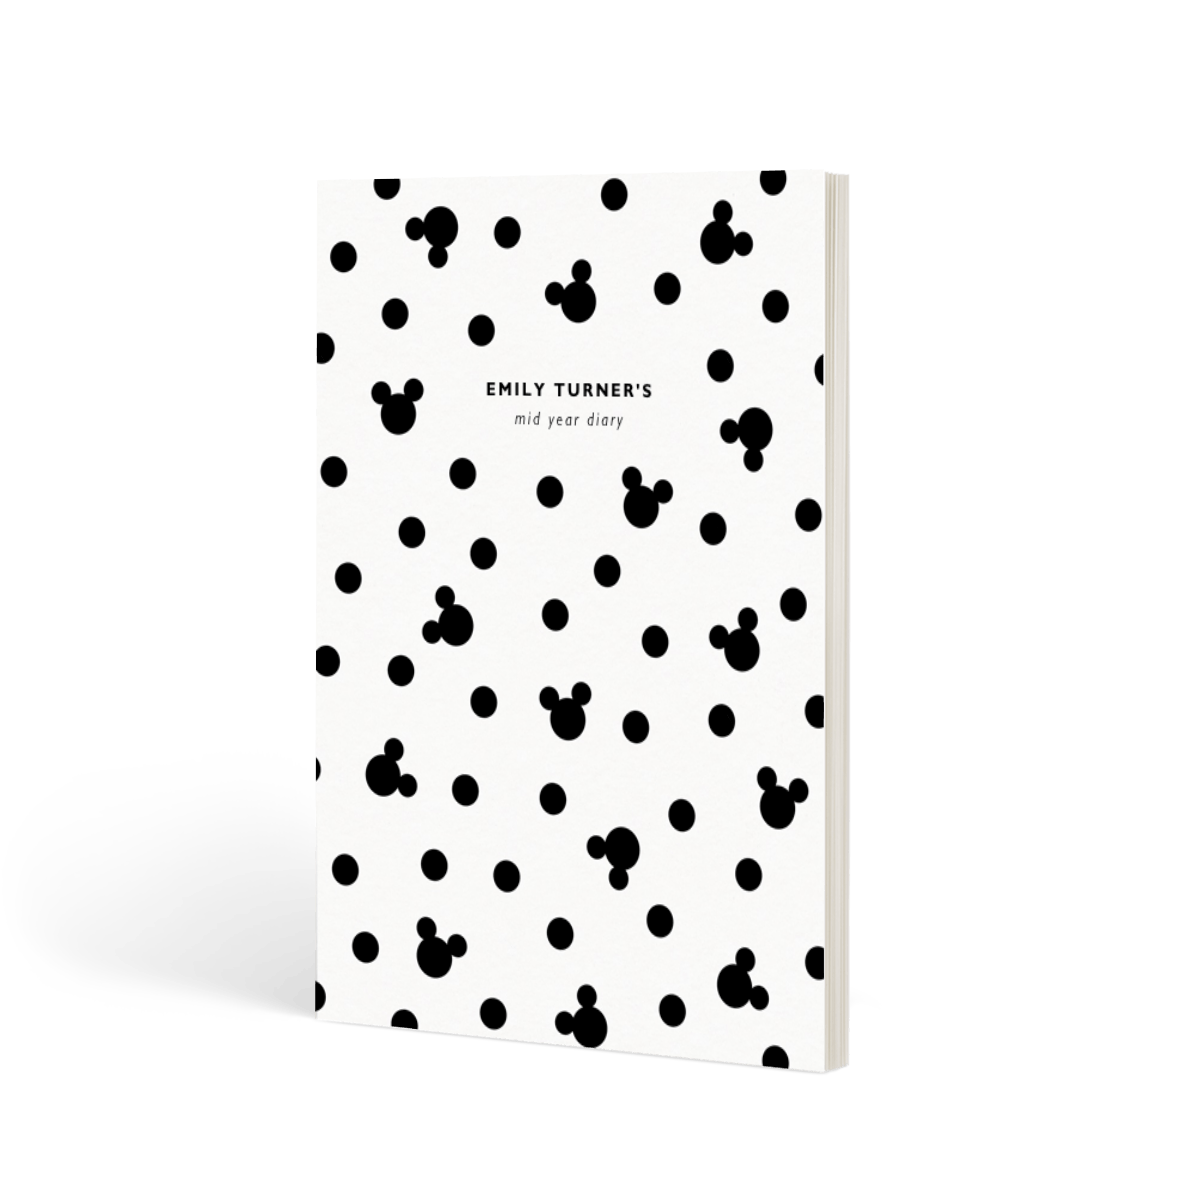 Https%3a%2f%2fwww.papier.com%2fproduct image%2f72909%2f7%2fpolka dot mickey mouse 17173 front 1556042391.png?ixlib=rb 1.1